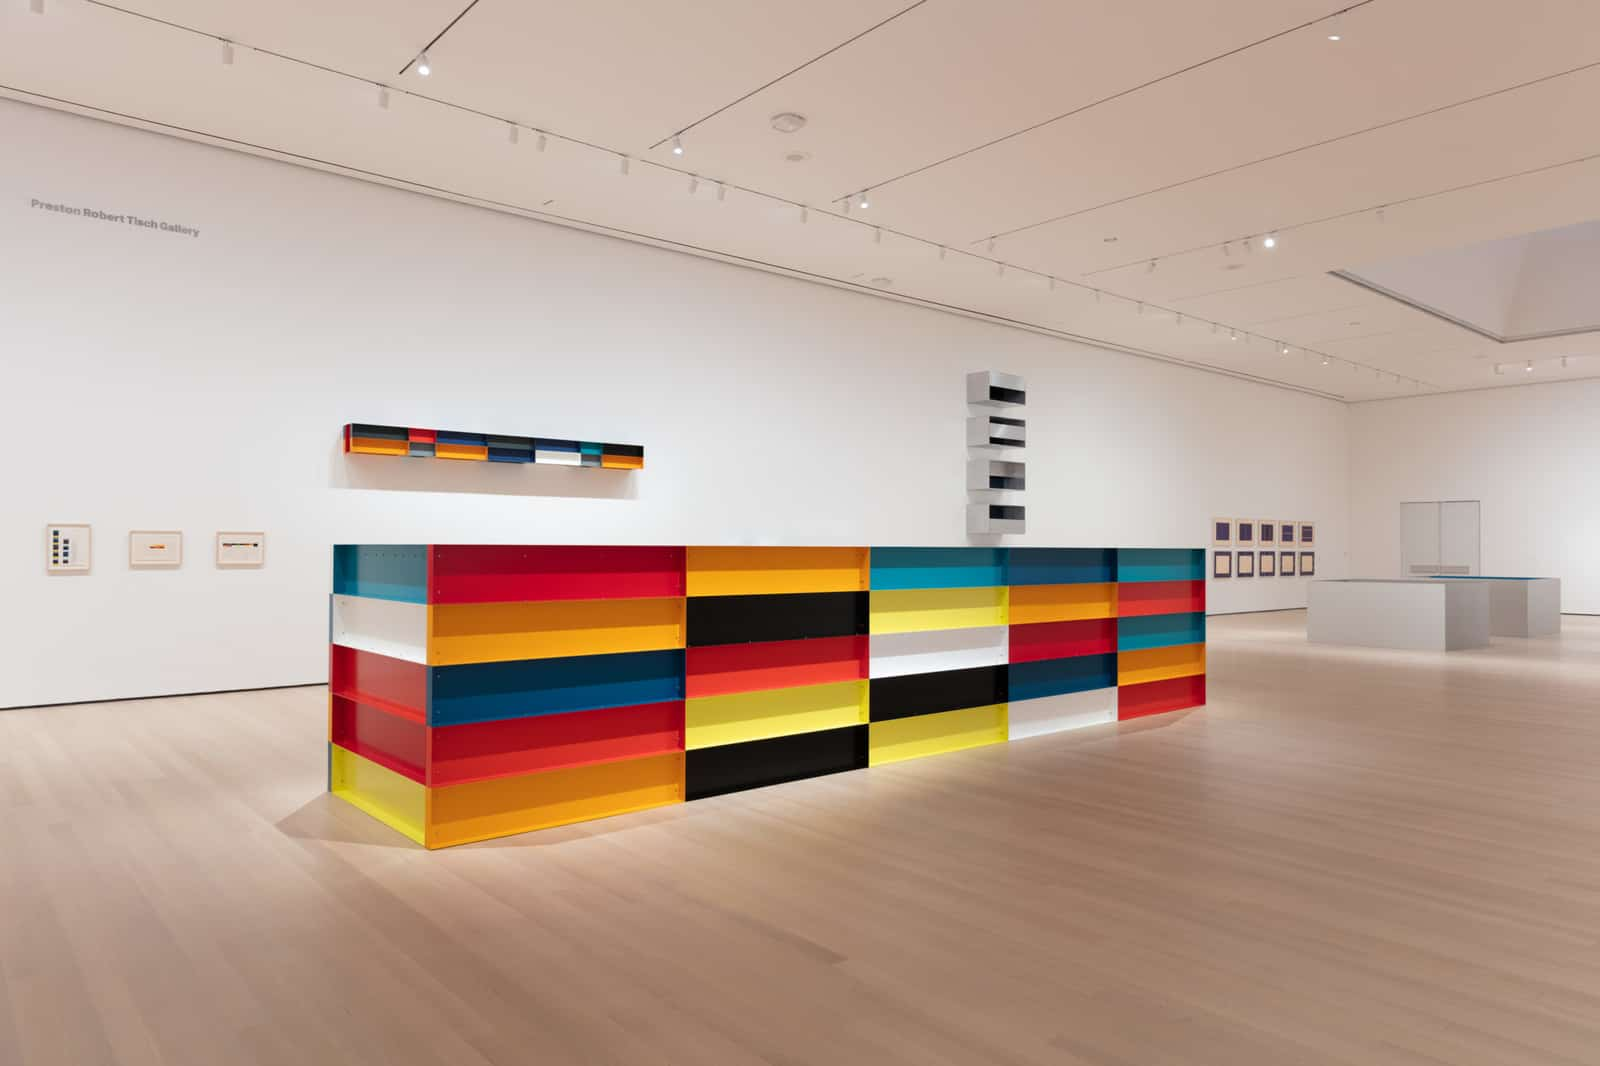 Installation view of Judd, The Museum of Modern Art, New York, March 1–July 11, 2020. Digital Image © 2020 The Museum of Modern Art, New York. Photo by Jonathan Muzikar